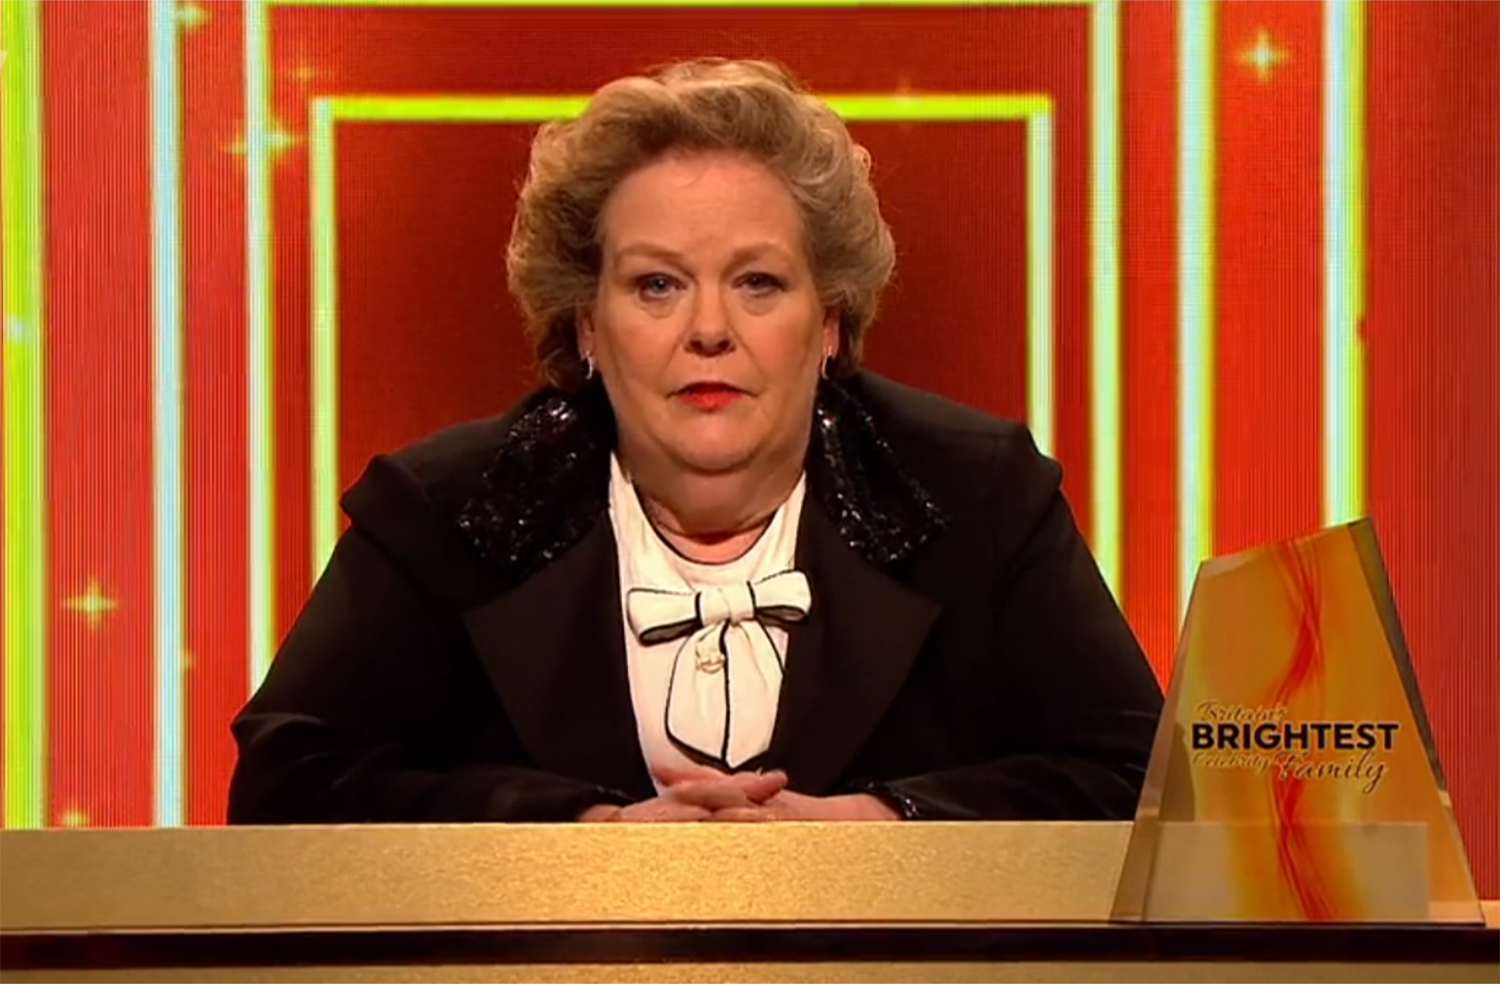 Anne Hegerty hits back as Britain's Brightest Celebrity Family viewer accuses show of being 'rigged'